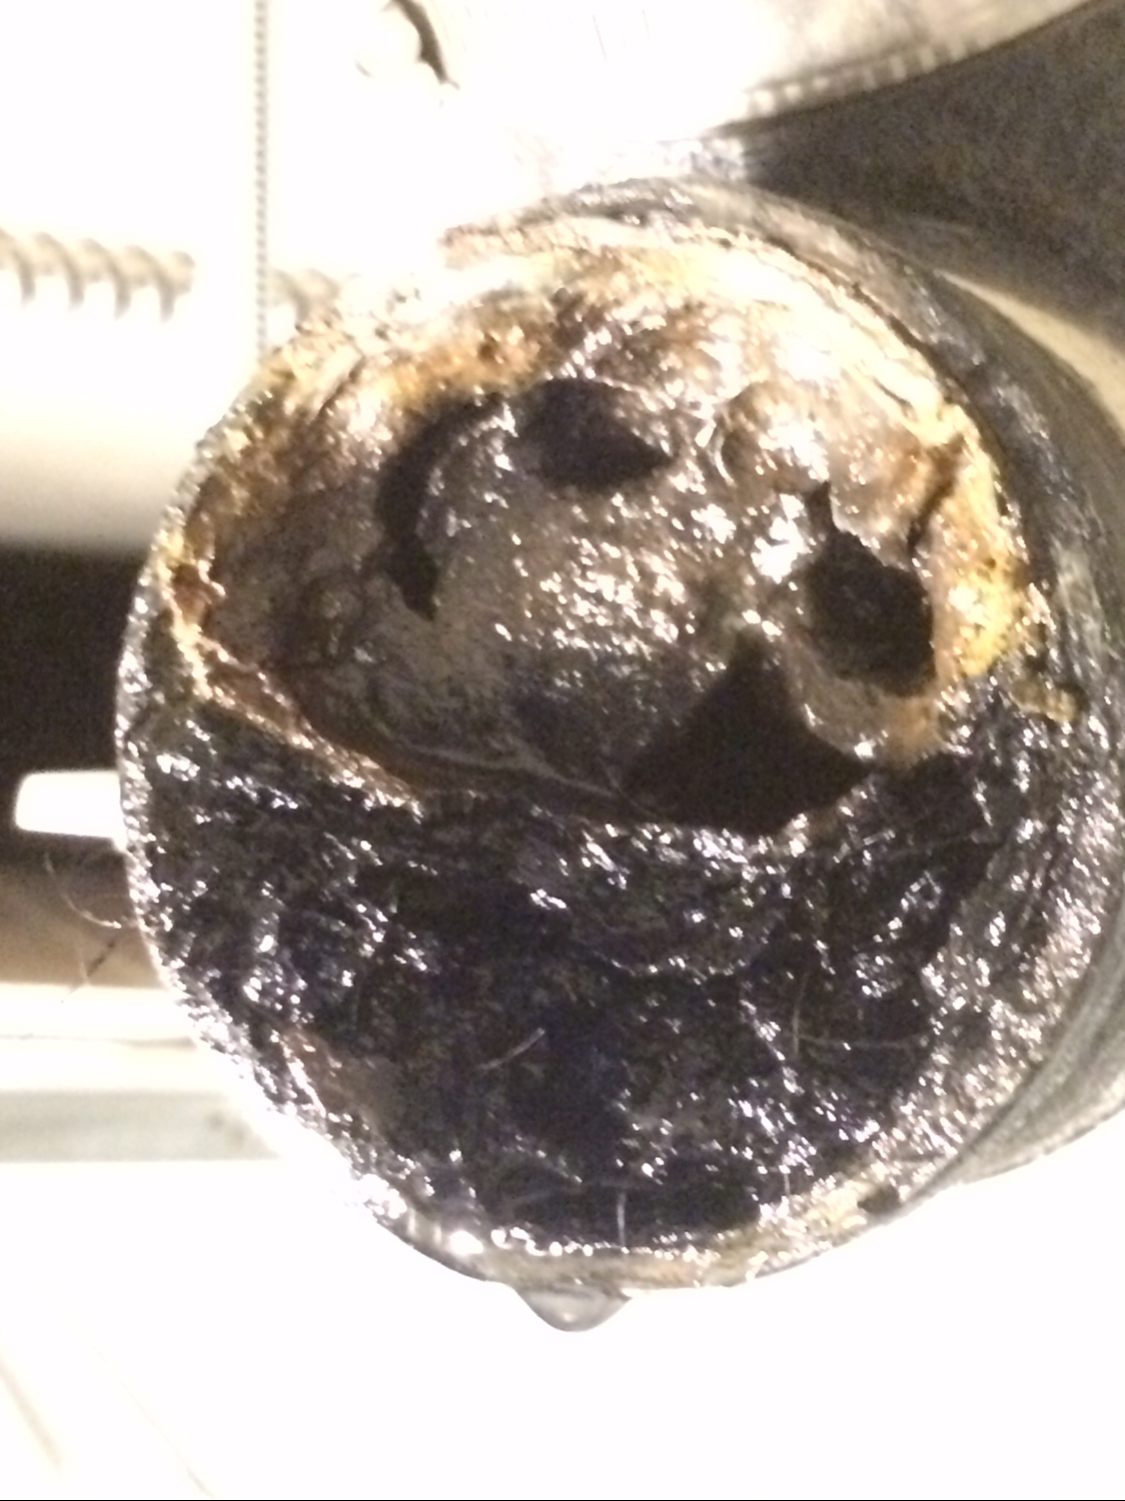 plugged-kitchen-drain-full-of-grease